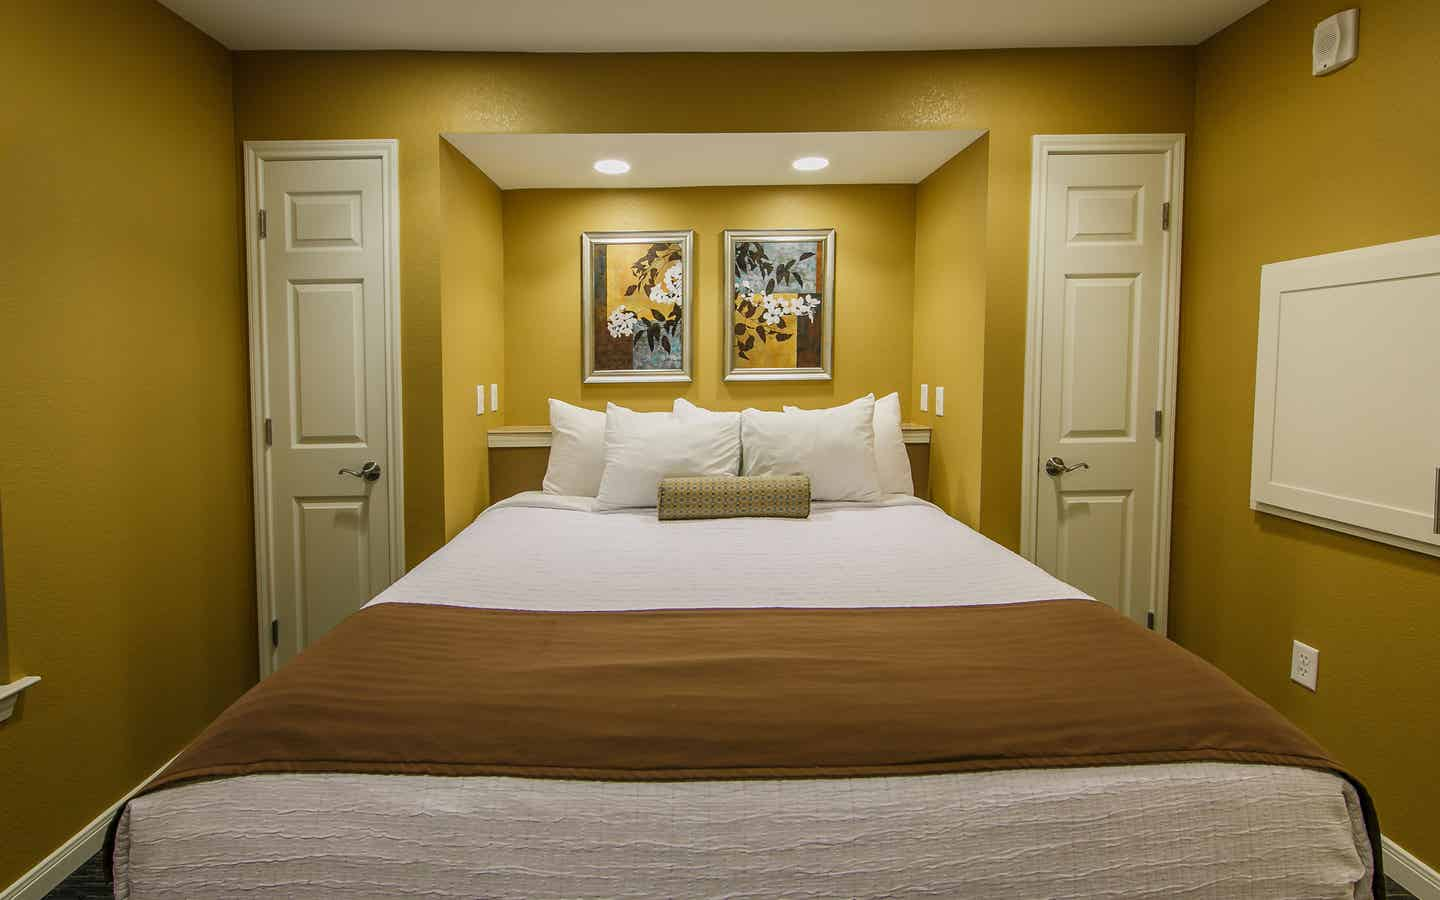 Bedroom in a two-bedroom ambassador villa at the Hill Country Resort in Canyon Lake, Texas.